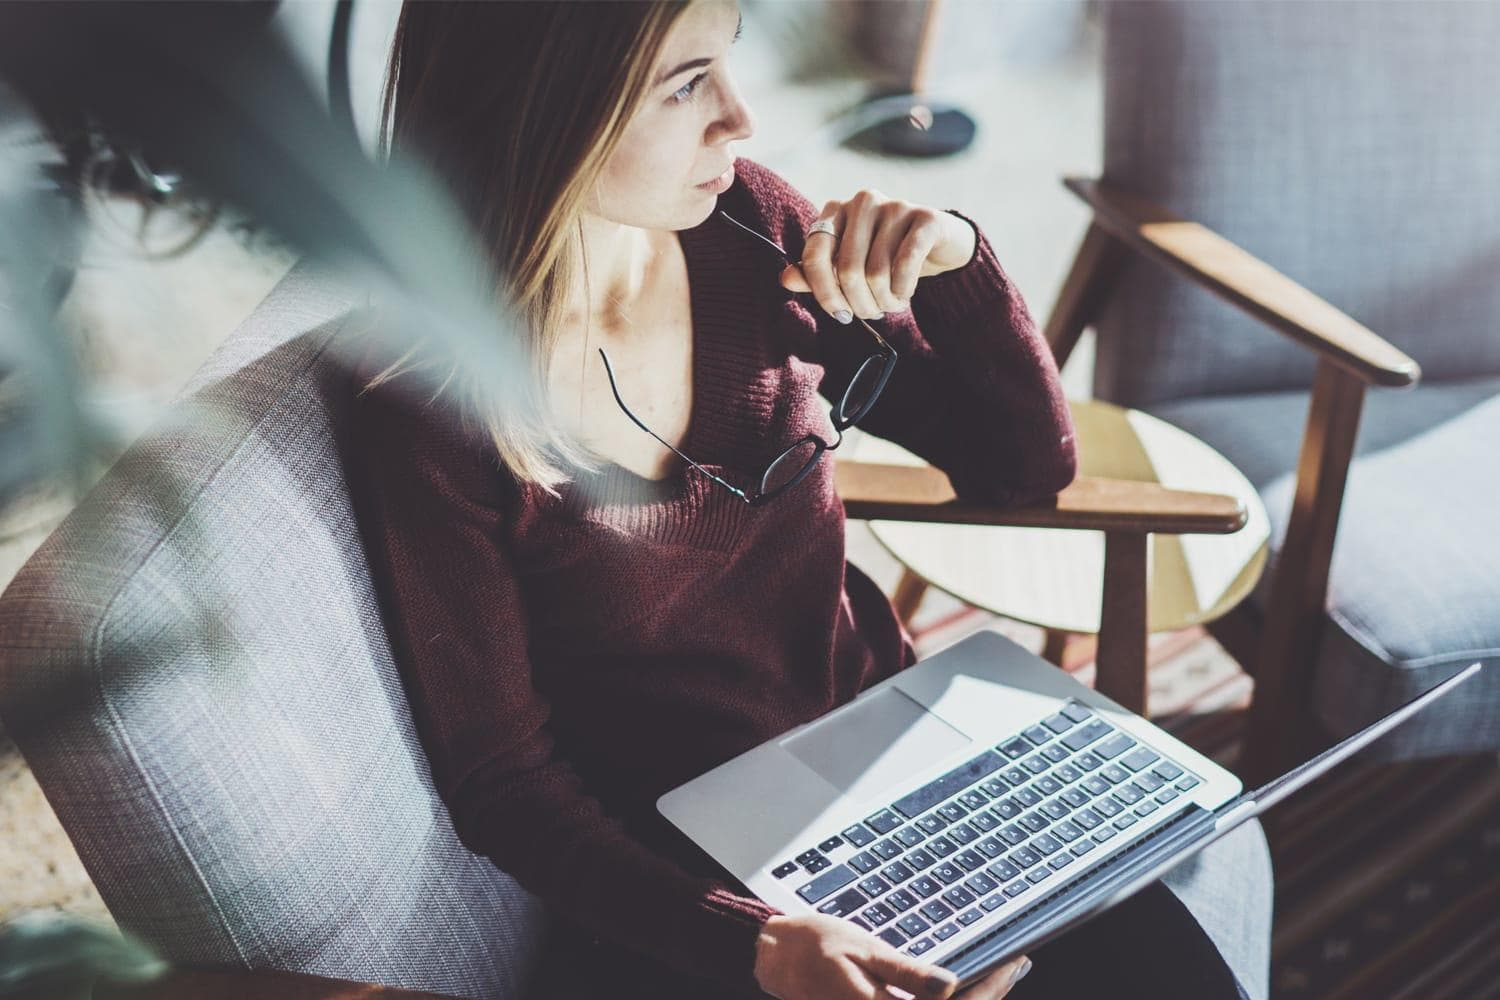 Concentrated business woman with laptop